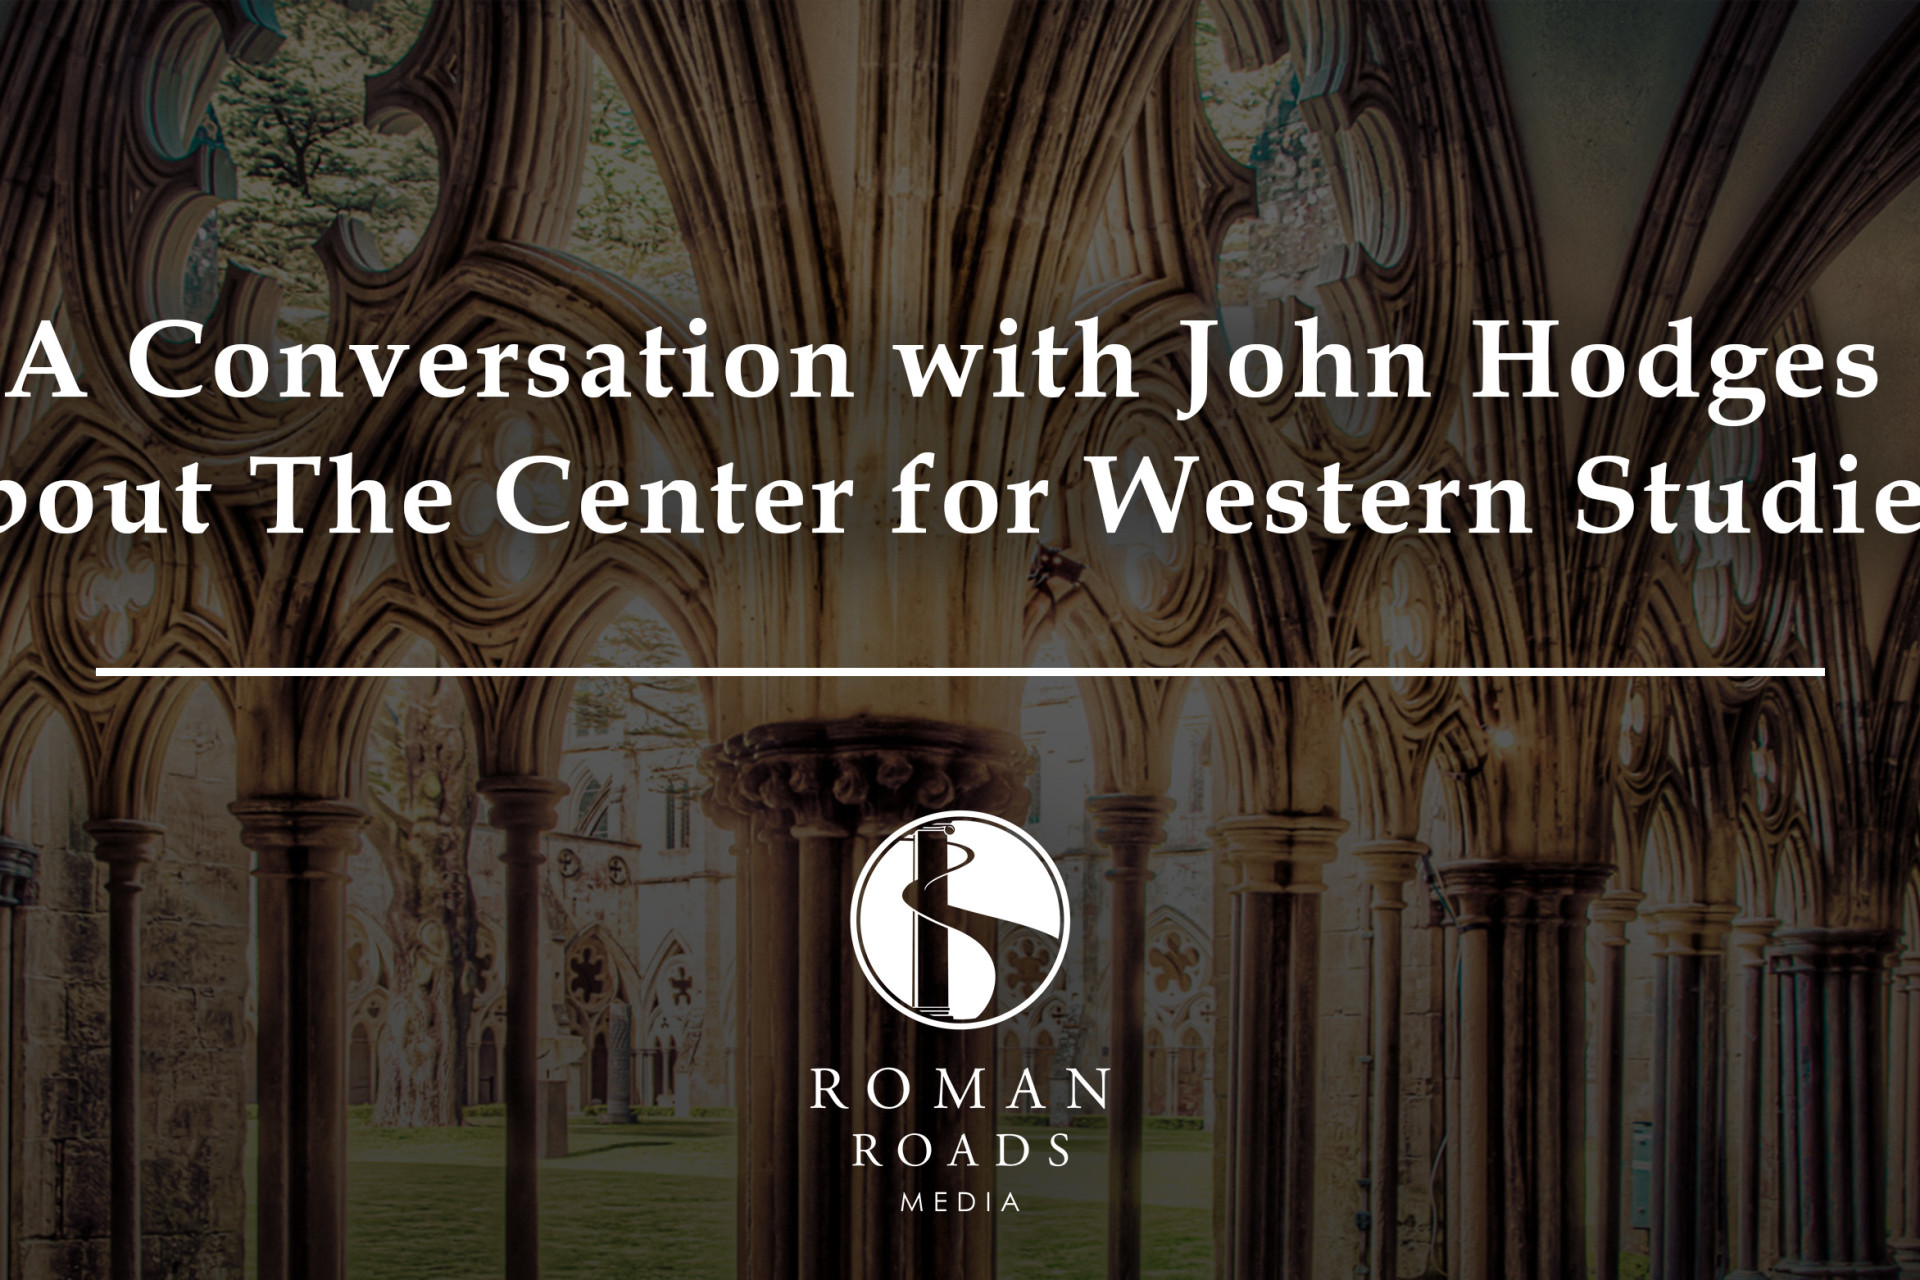 A Conversation with John Hodges about The Center for Western Studies